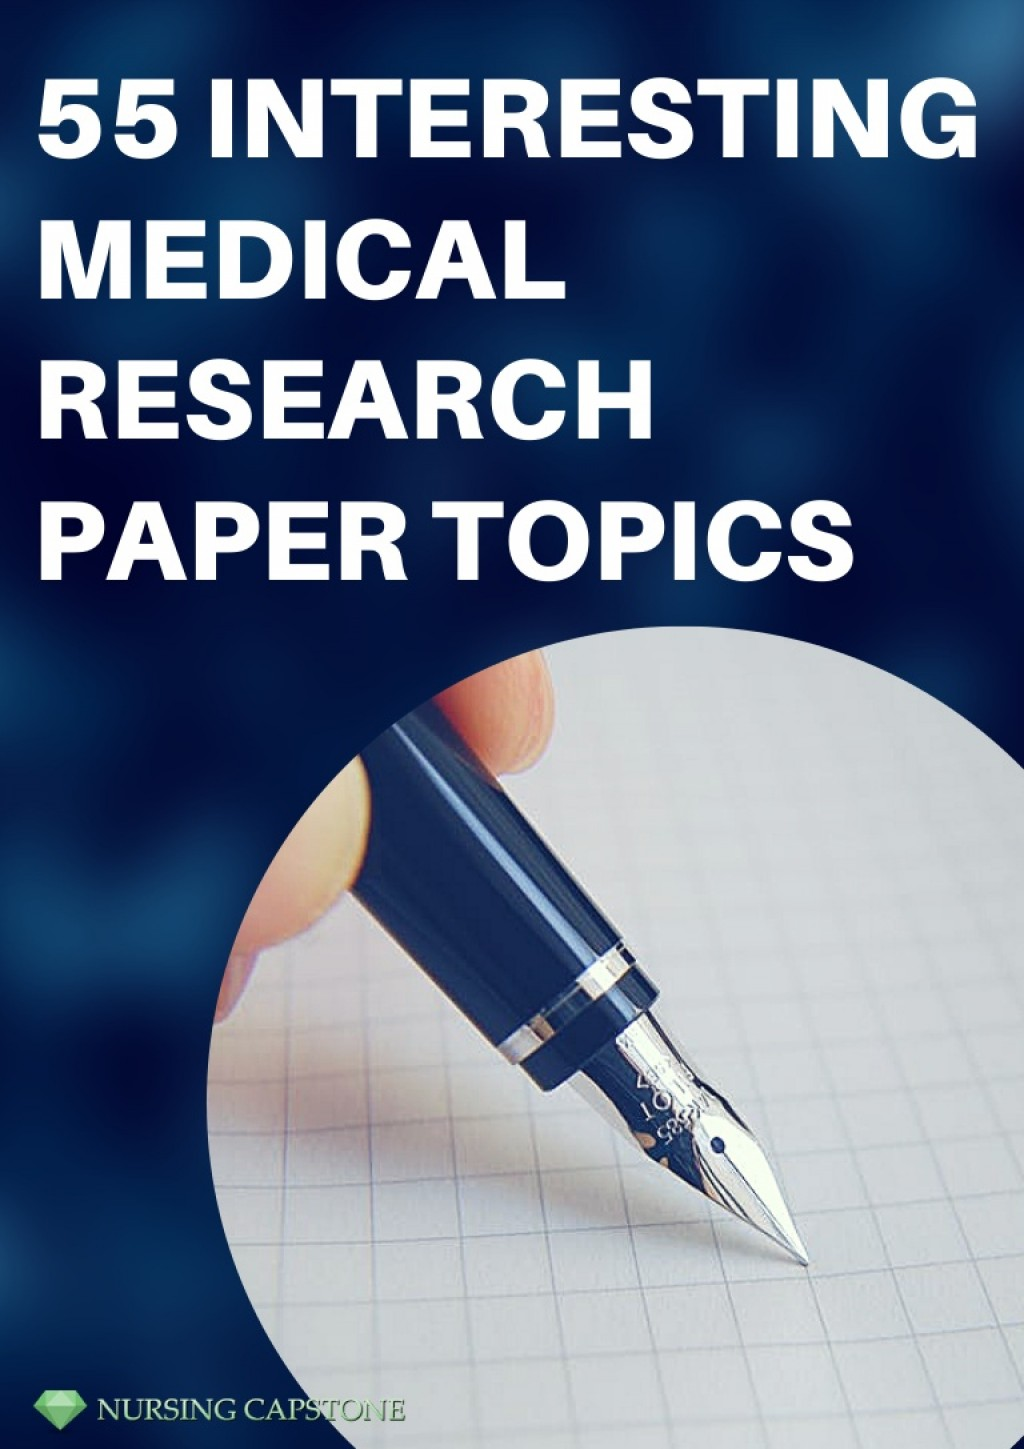 008 Medical Topics For Research Paper Good Thumbnail Imposing Argumentative Interesting Large